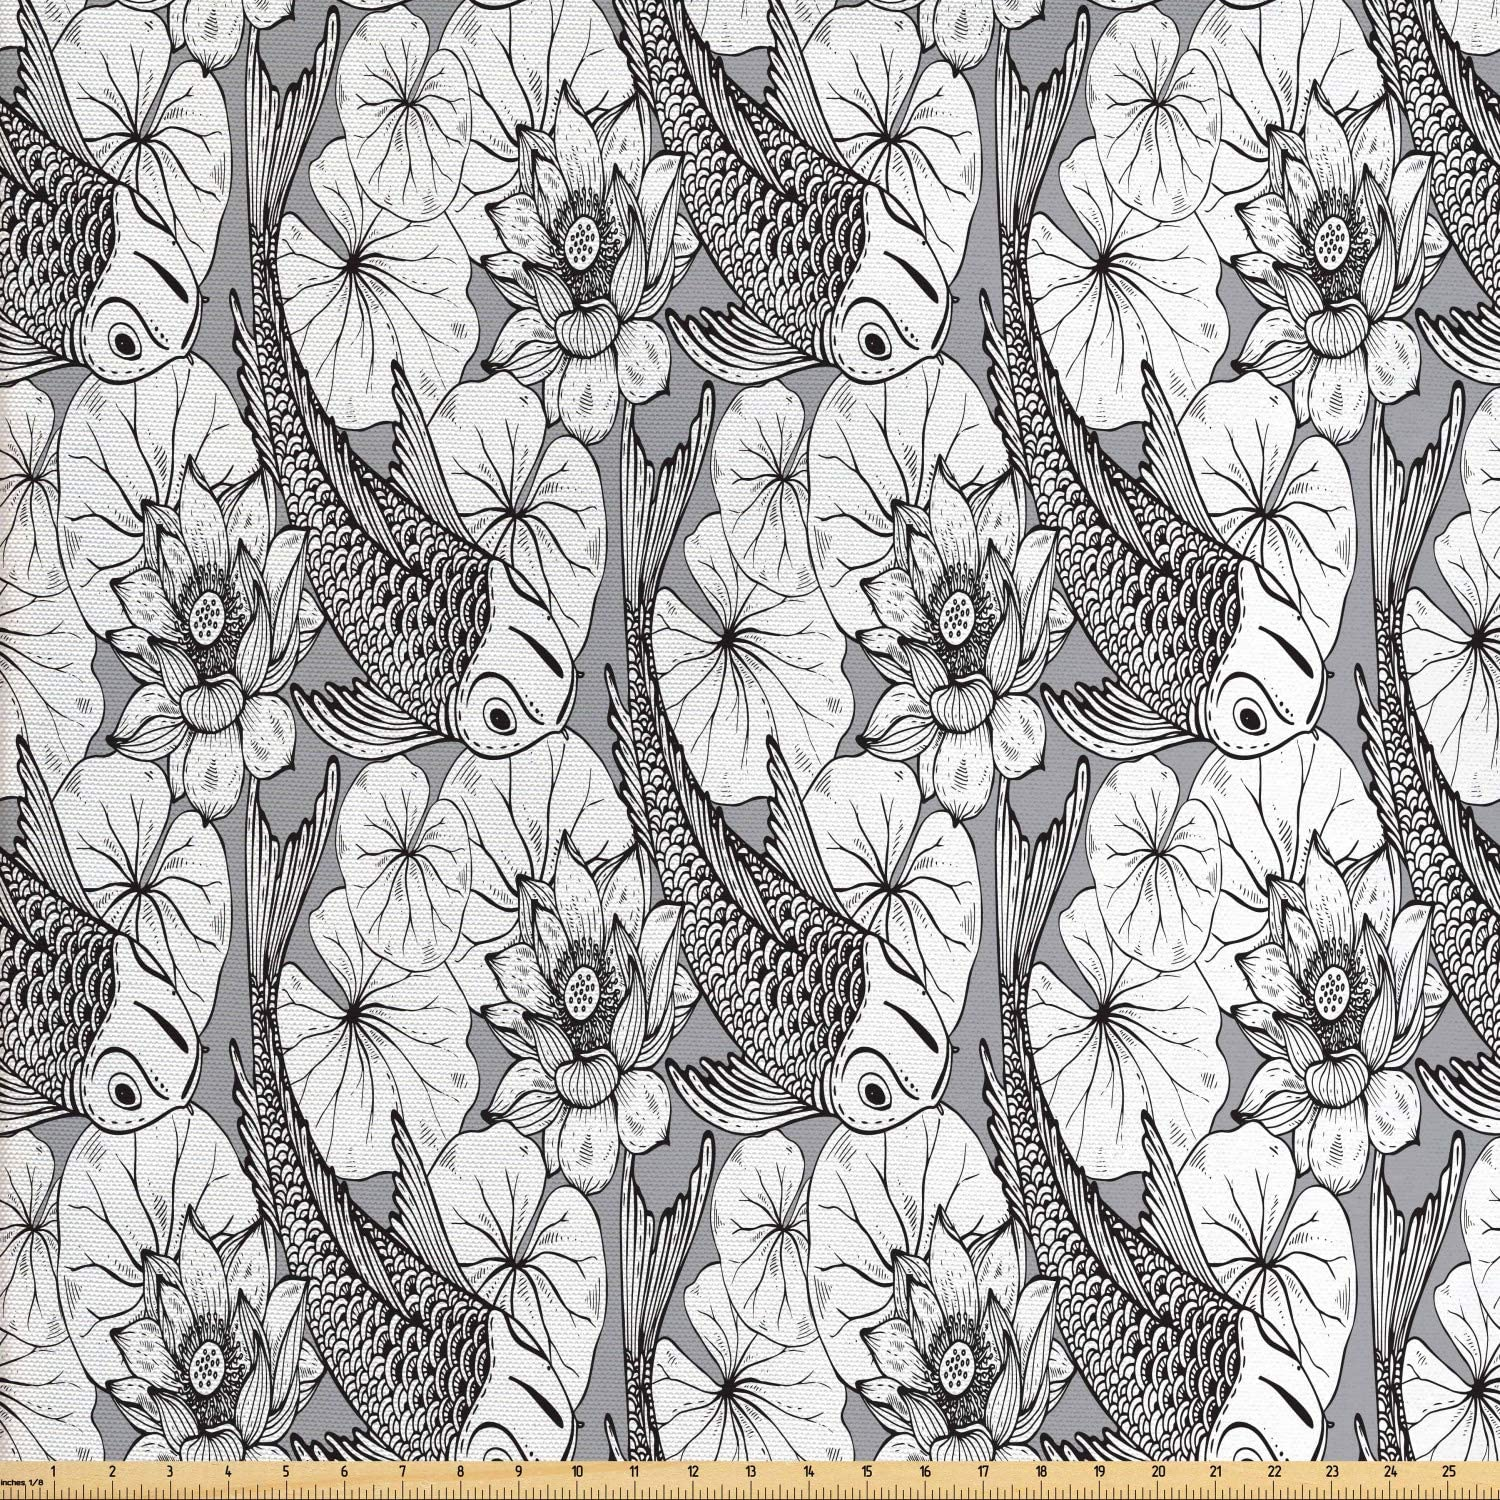 Ambesonne Asian Fabric by The Yard, Sketch Style Lotus and Carp Koi Fish Japanese of Friendship Monochrome, Decorative Fabric for Upholstery and Home Accents, 10 Yards, White Grey